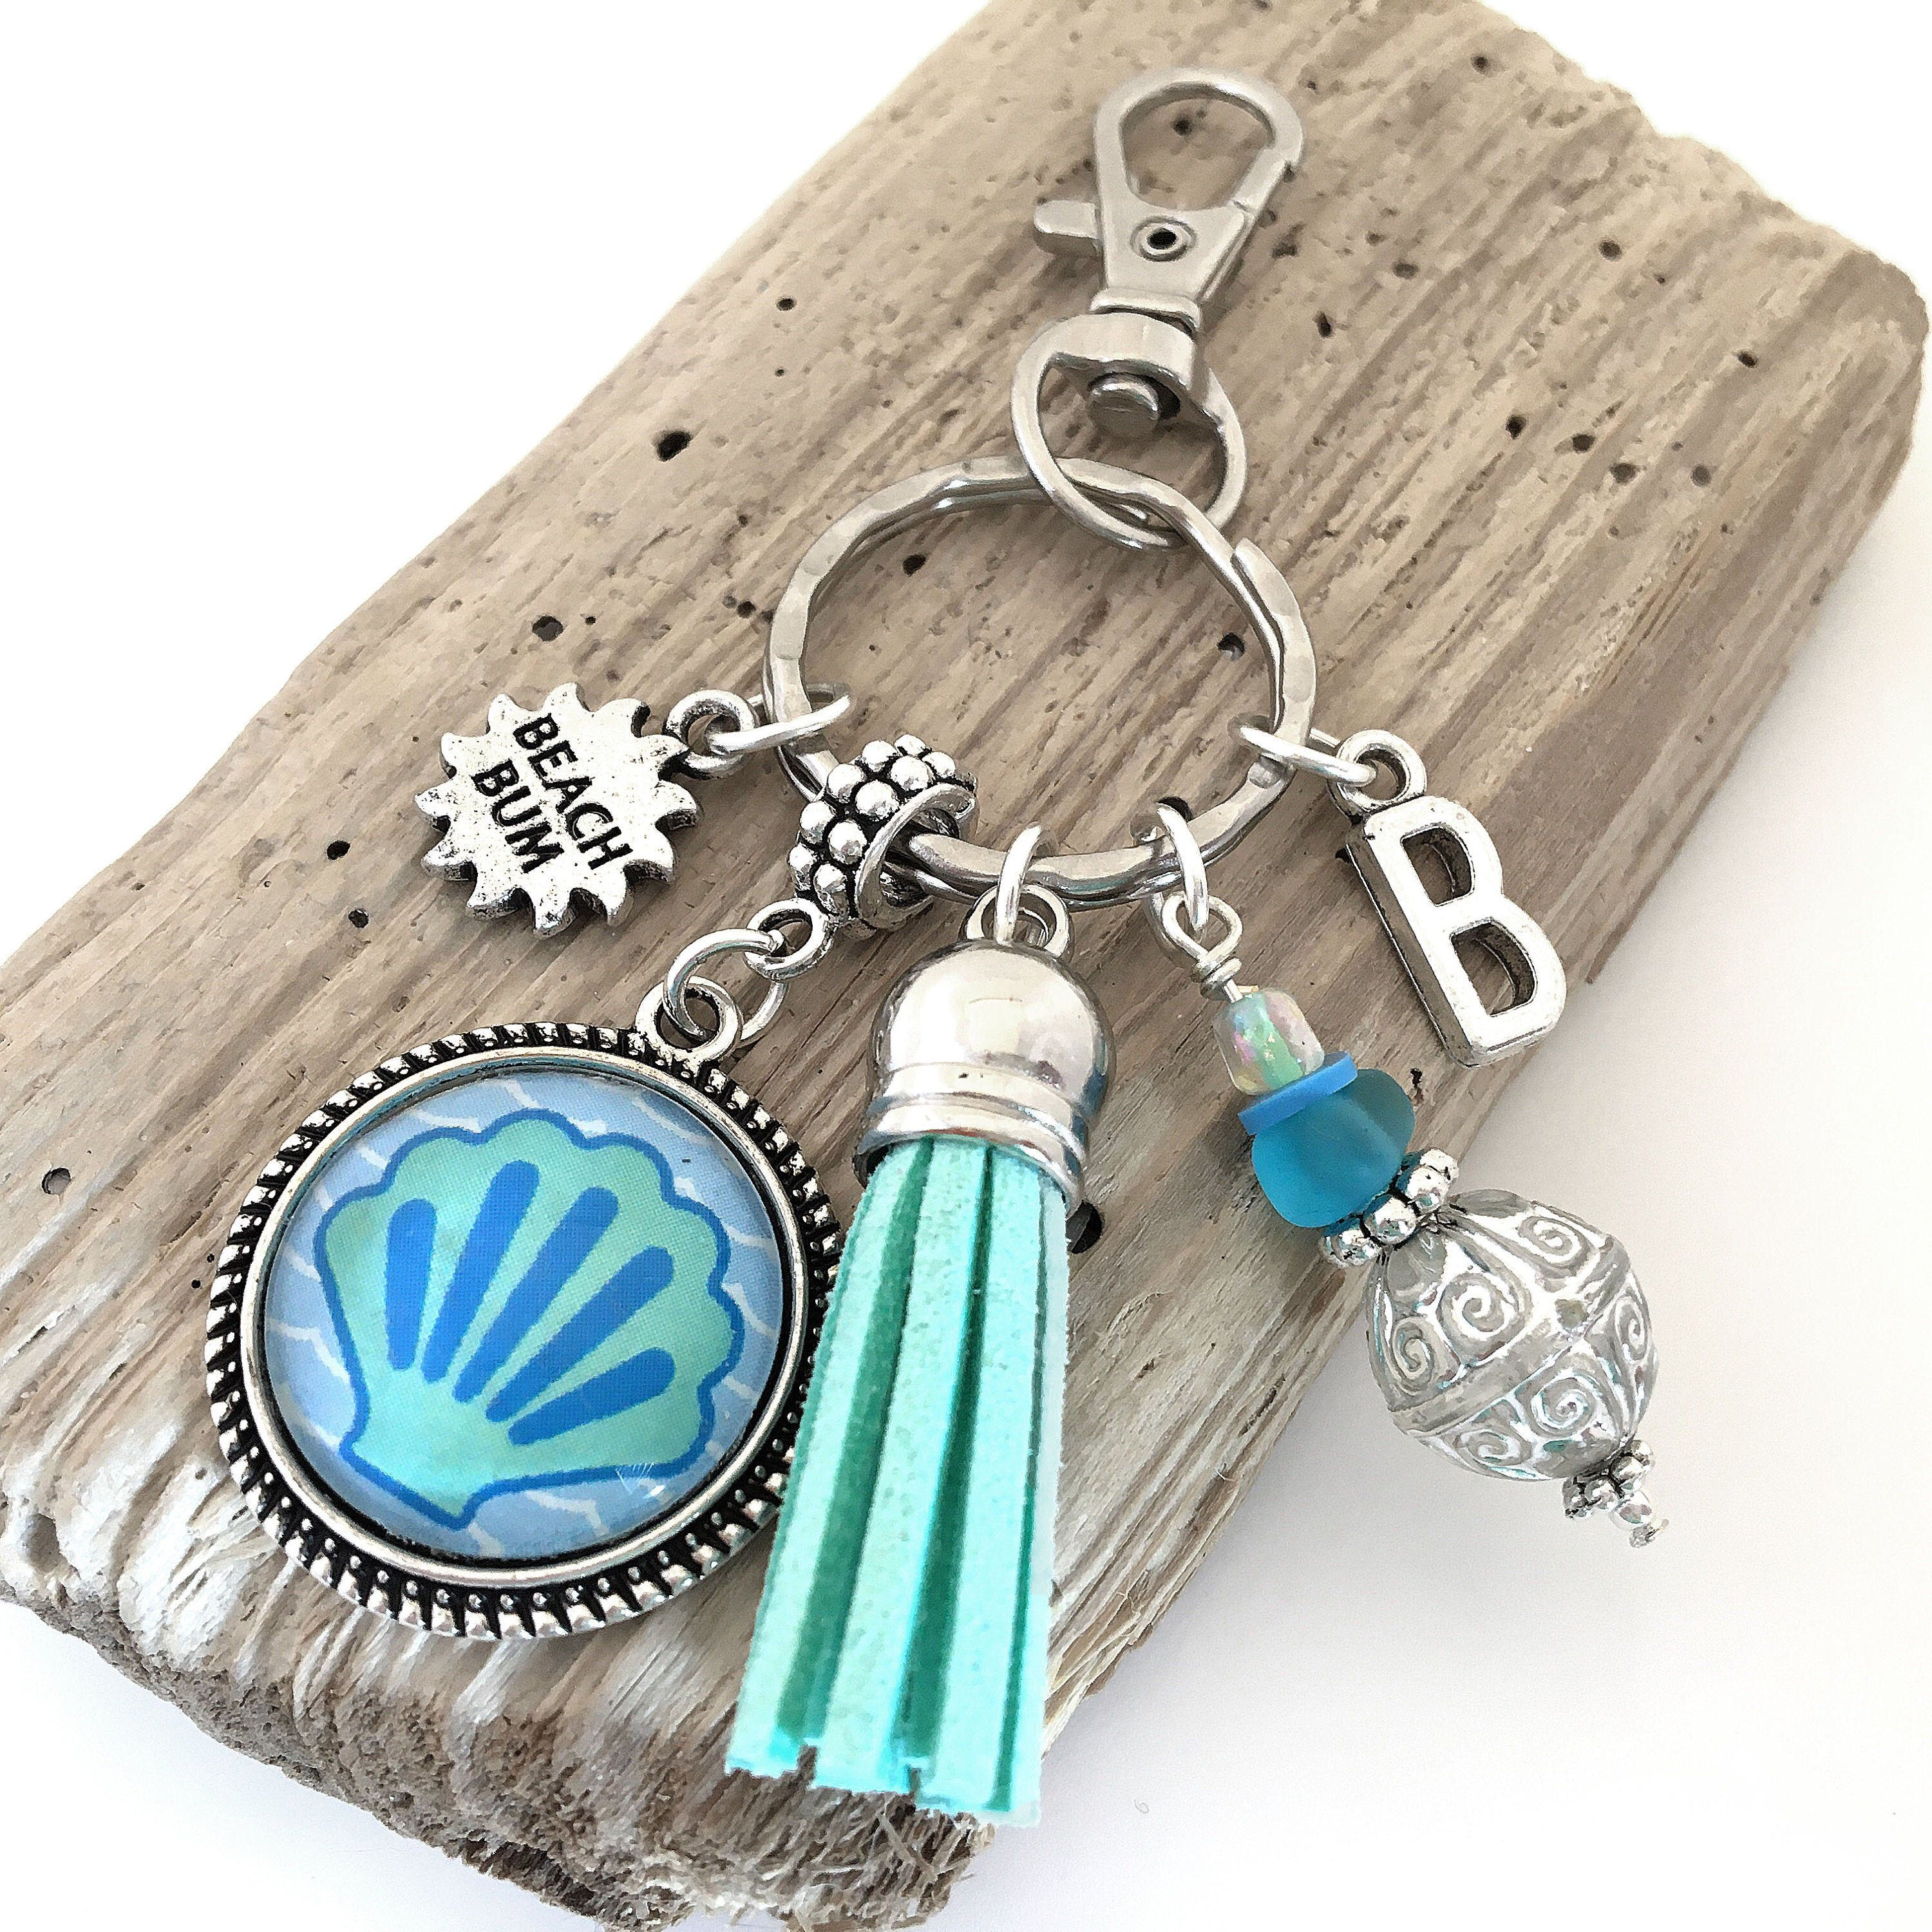 Sand between your toes beach//holiday memories bag charm//key ring